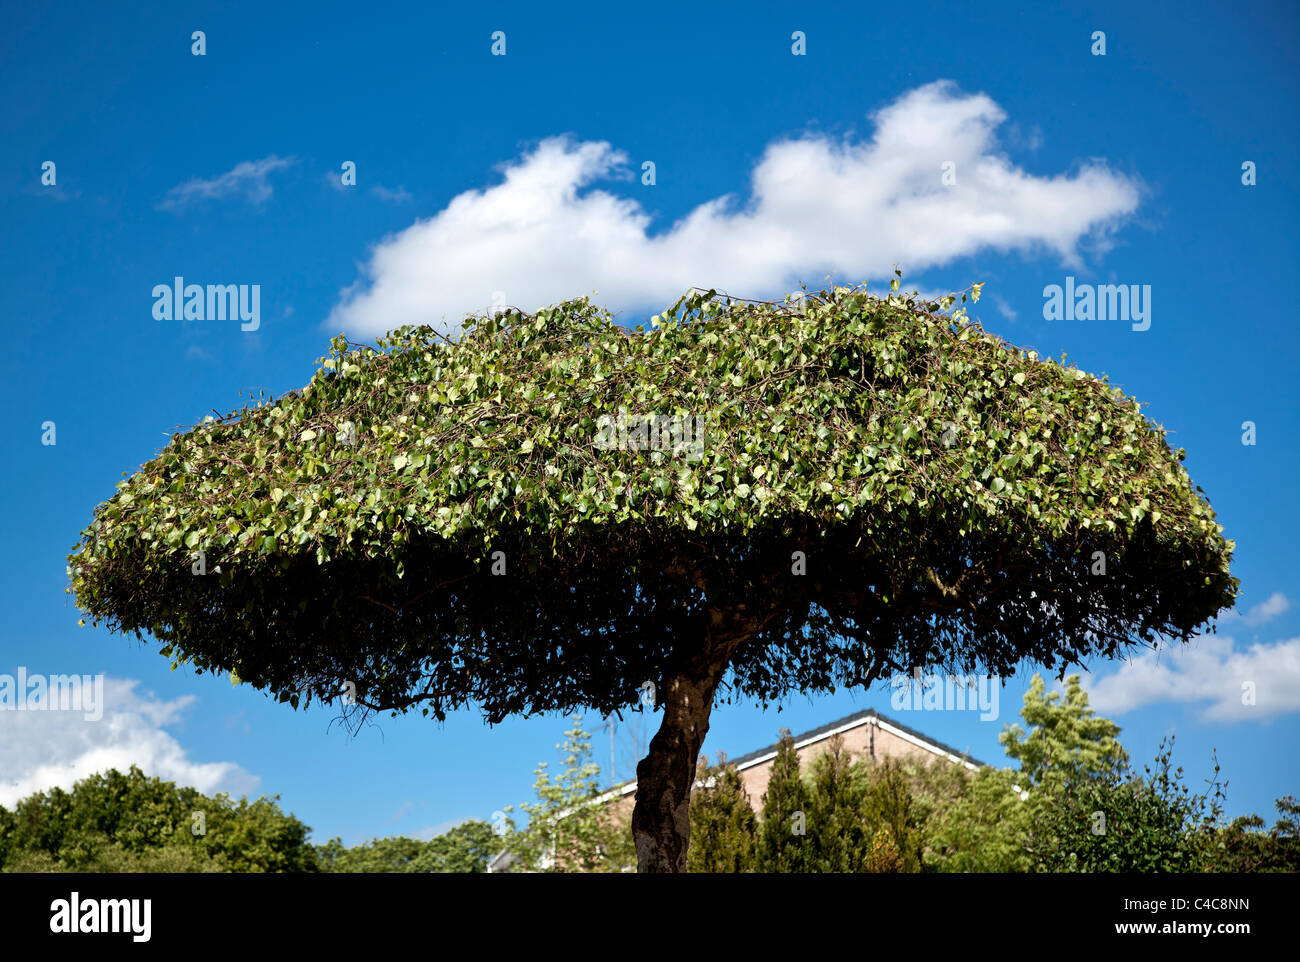 A neatly trimmed tree in an English garden against a blue sky. - Stock Image